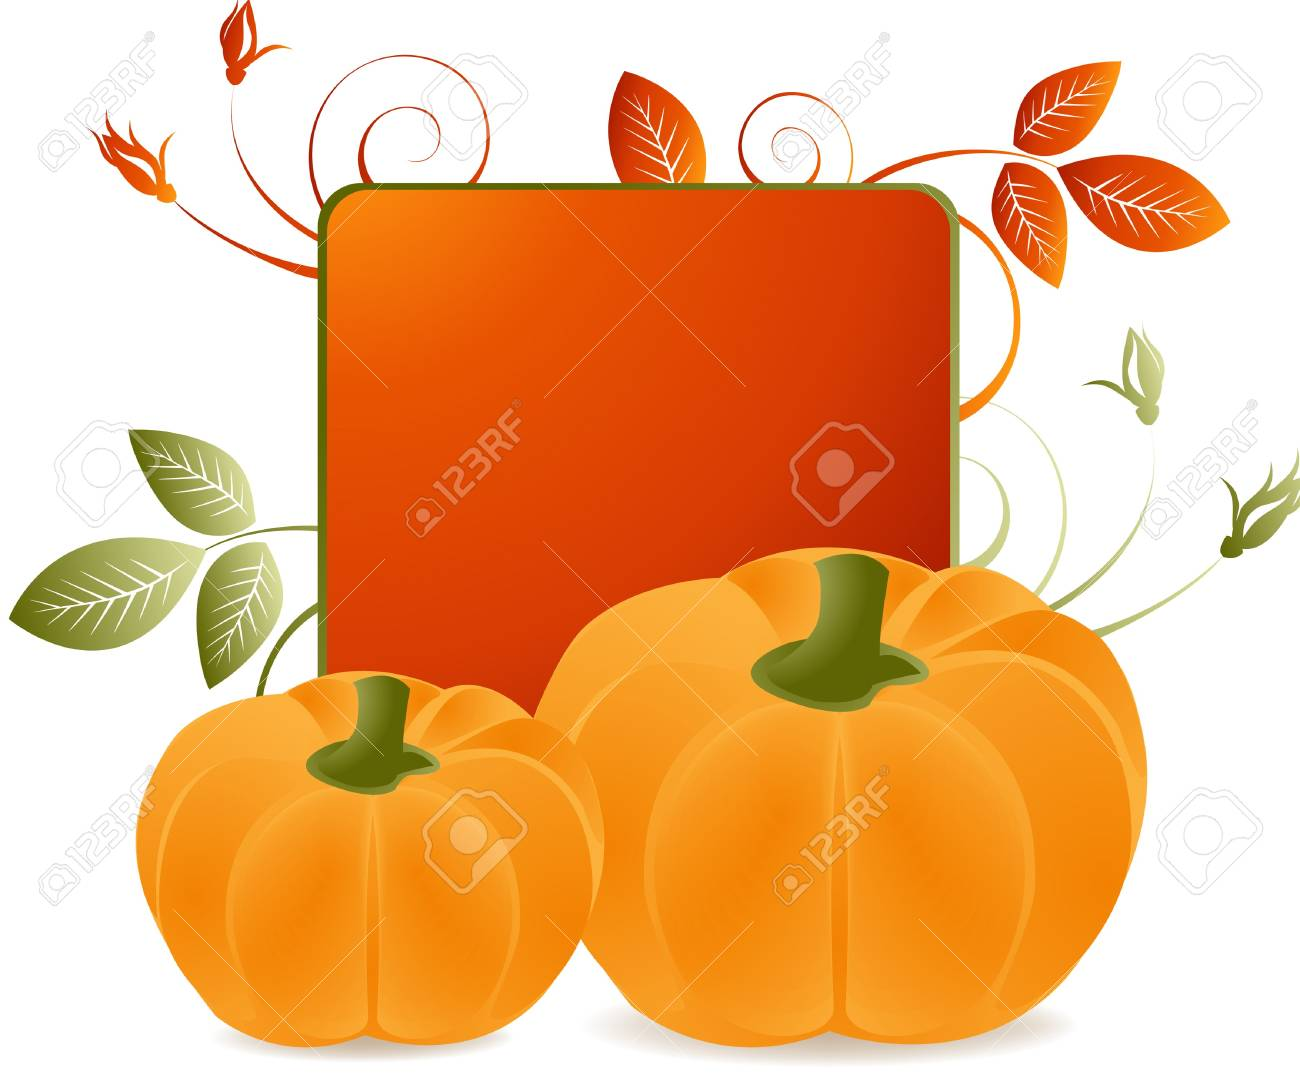 Thanksgiving Concept Illustration Image, you can use it for Thanksgiving  sale time or seasons Stock Photo - 8003191